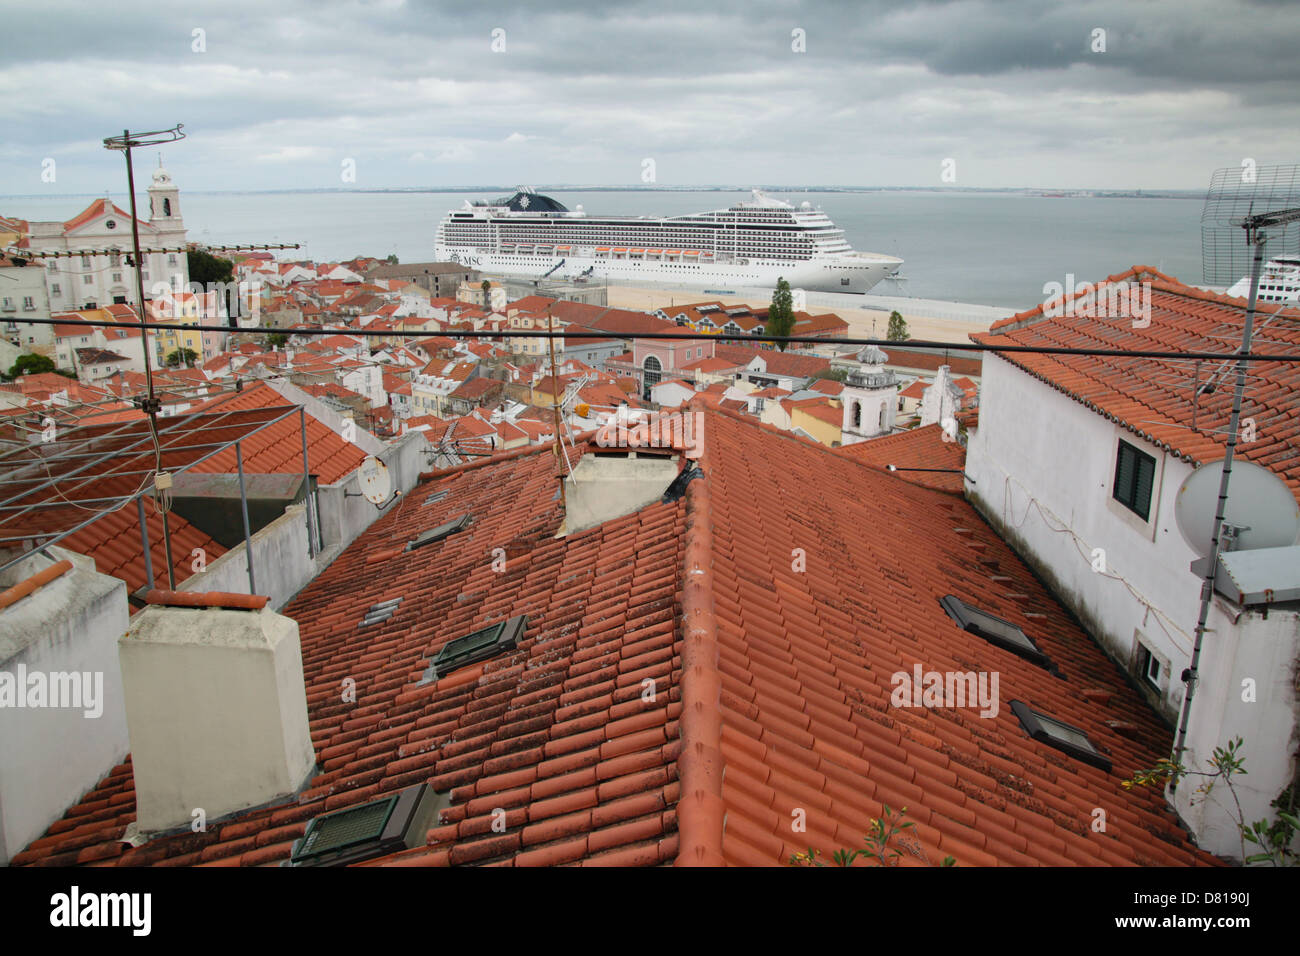 A part of MSC fleet - MSC POESIA in one of her dock during the Mediterranean cruise. - Stock Image